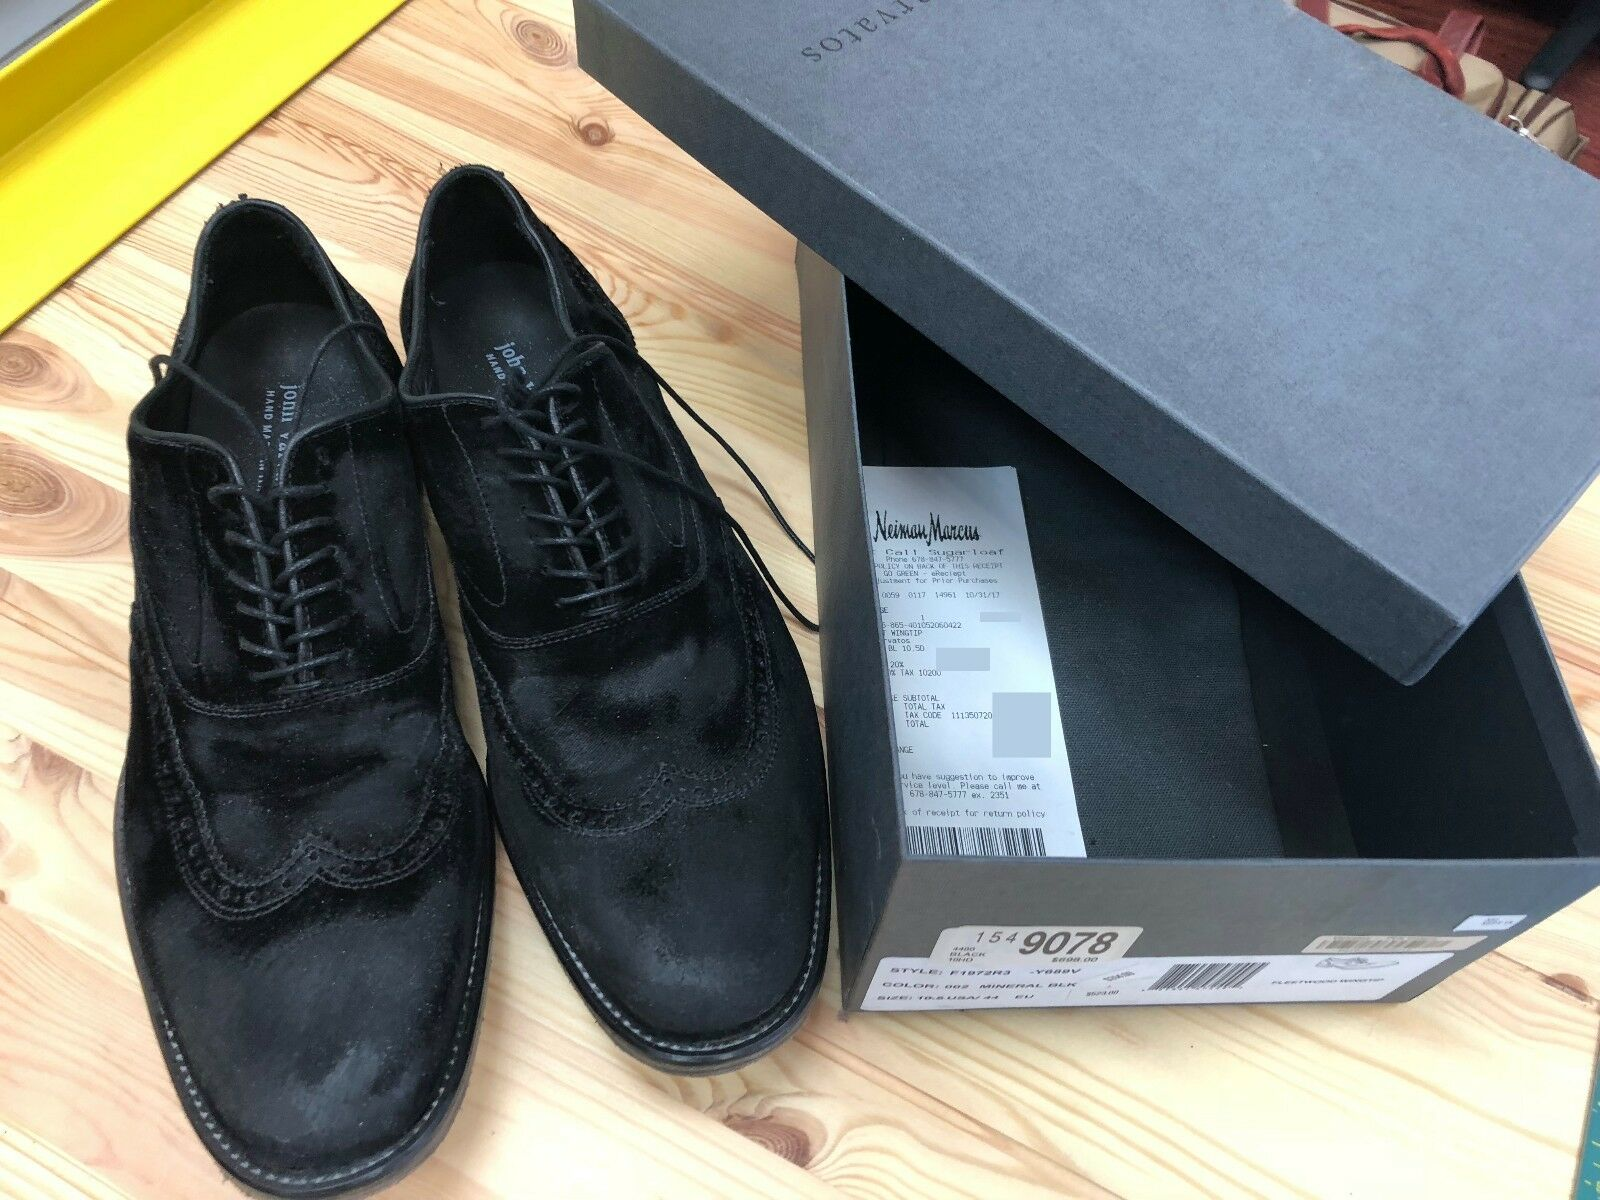 e747661dac7bab Varvatos Chaussures 10.5 John Taille nrrozf3737-Chaussures habillées ...